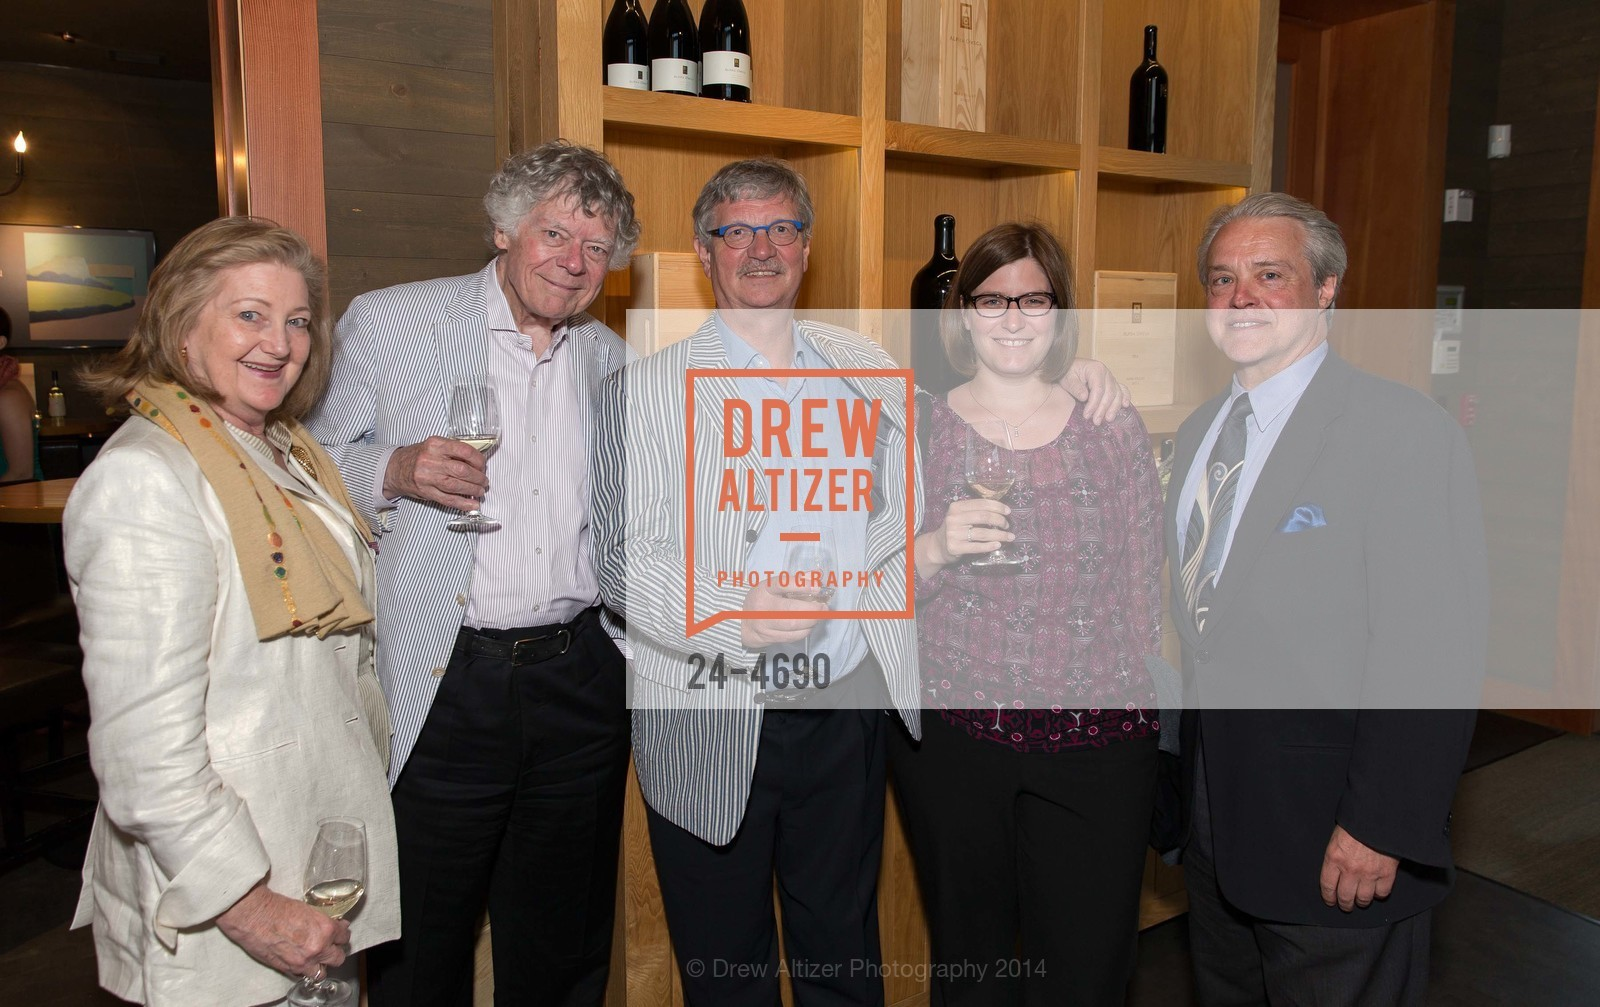 Martha Bredon, Gordon Getty, Job Maarse, Christina Gembaczka, Daniel Brewbaker, Photo #24-4690